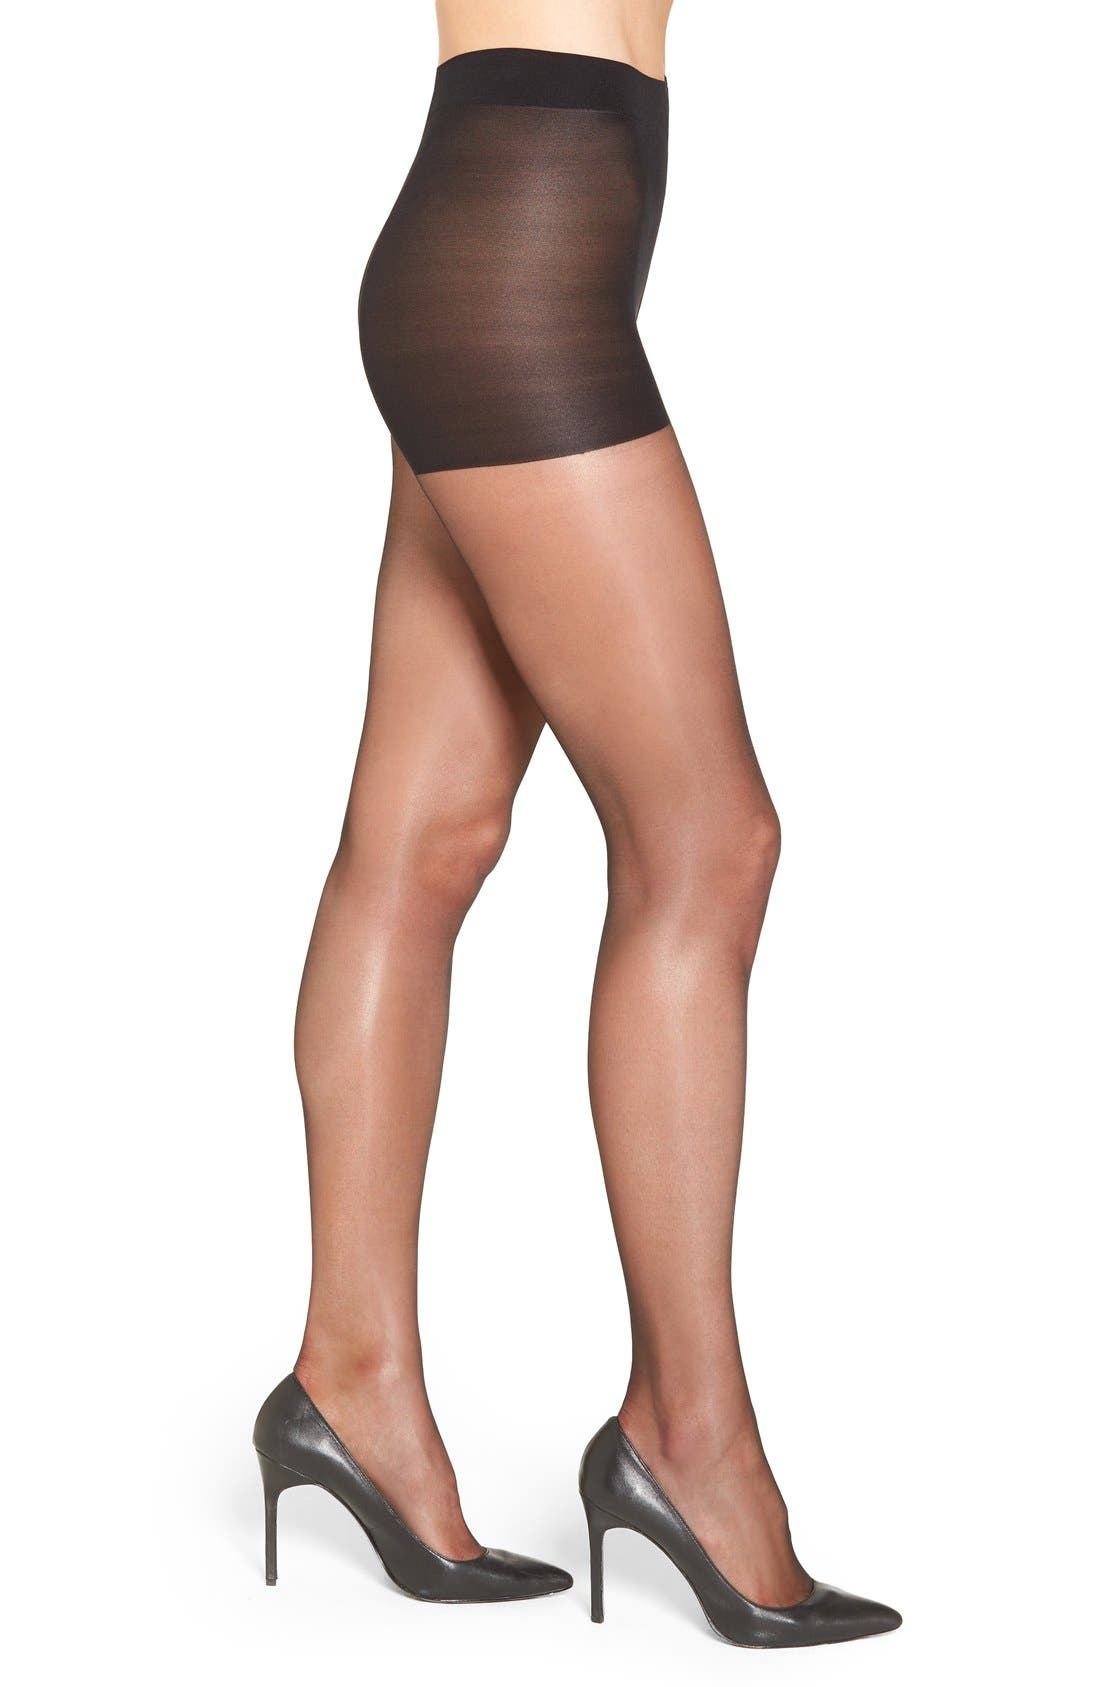 NORDSTROM Gloss Control Top Pantyhose